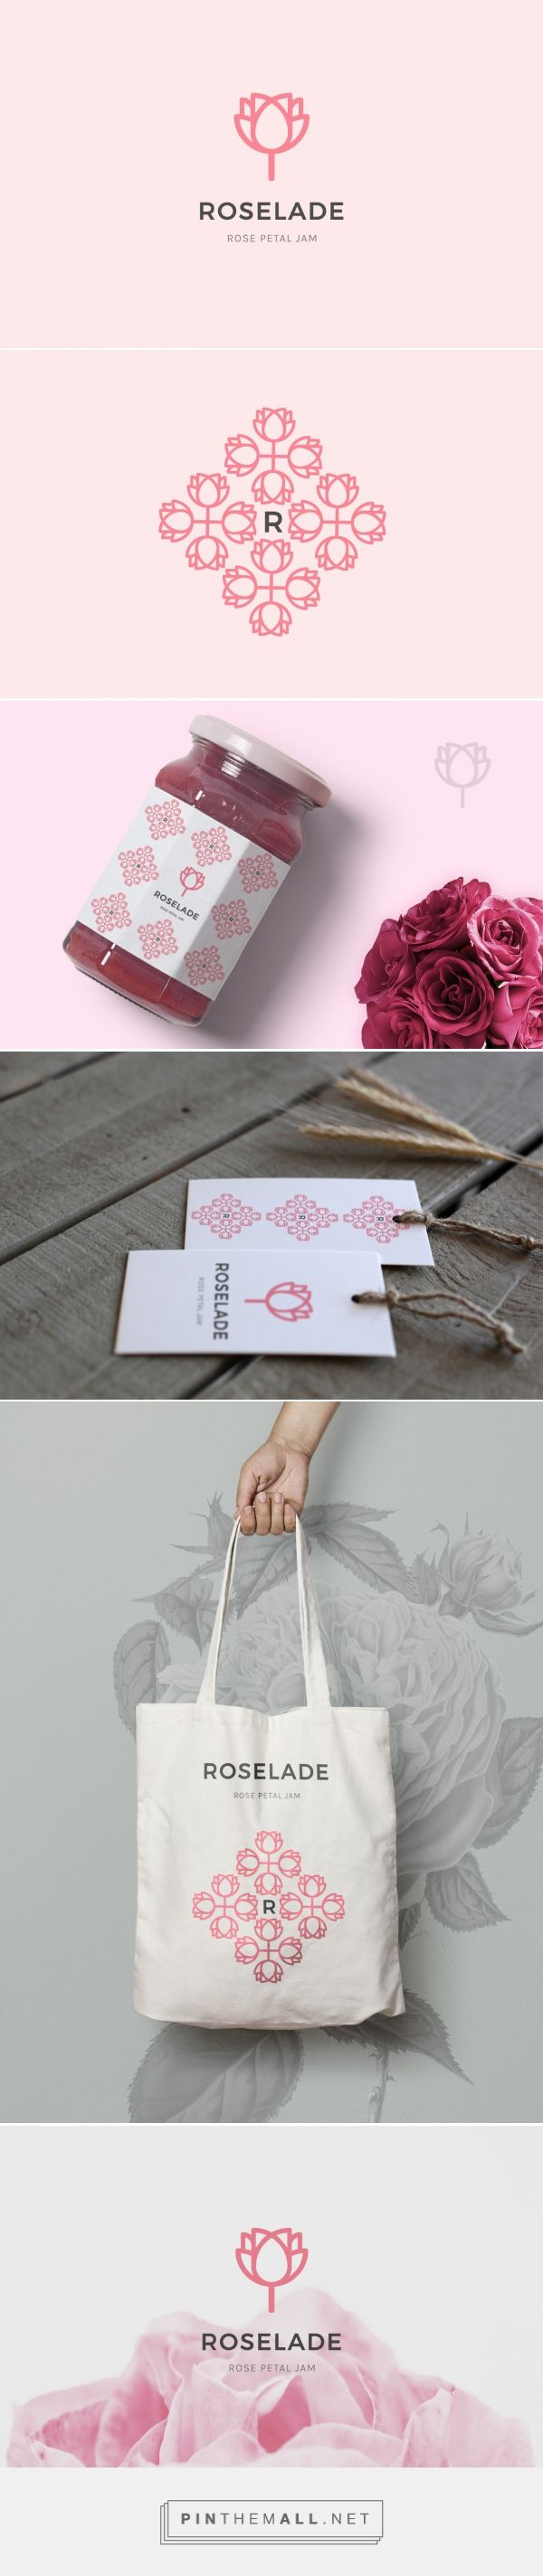 Roselade Branding on Behance | Fivestar Branding – Design and Branding Agency…